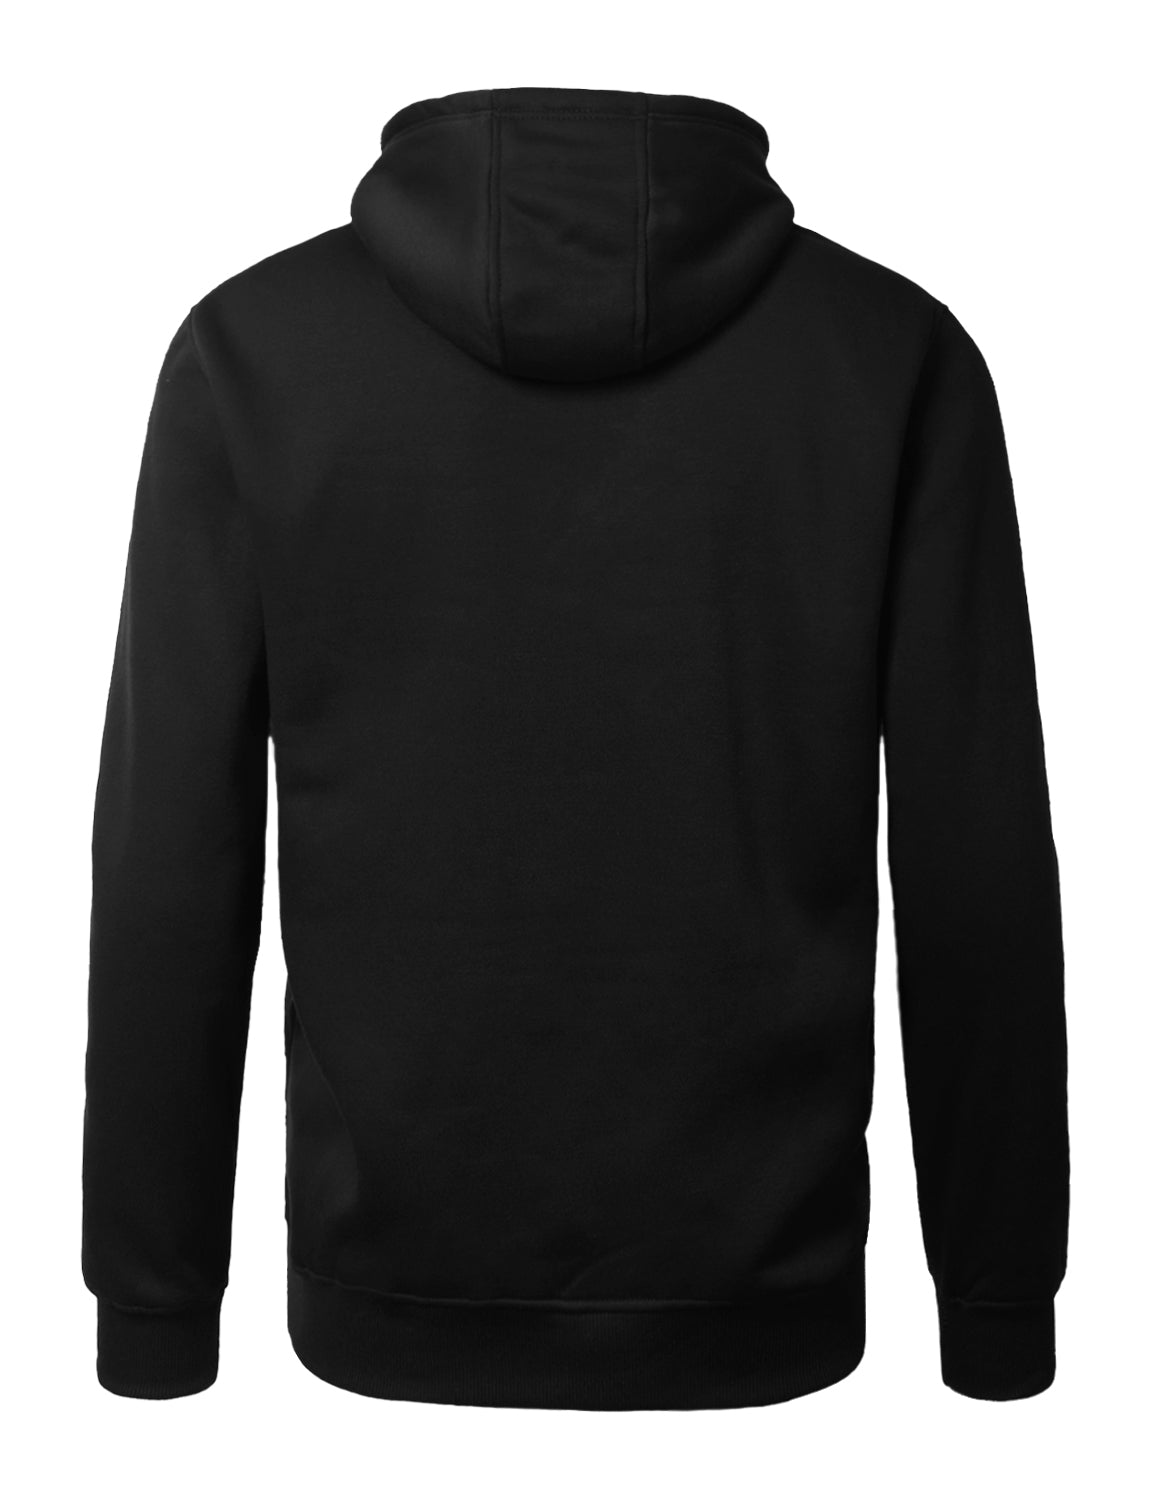 BLACK Lightweight Pullover Fleece Hoodie - URBANCREWS